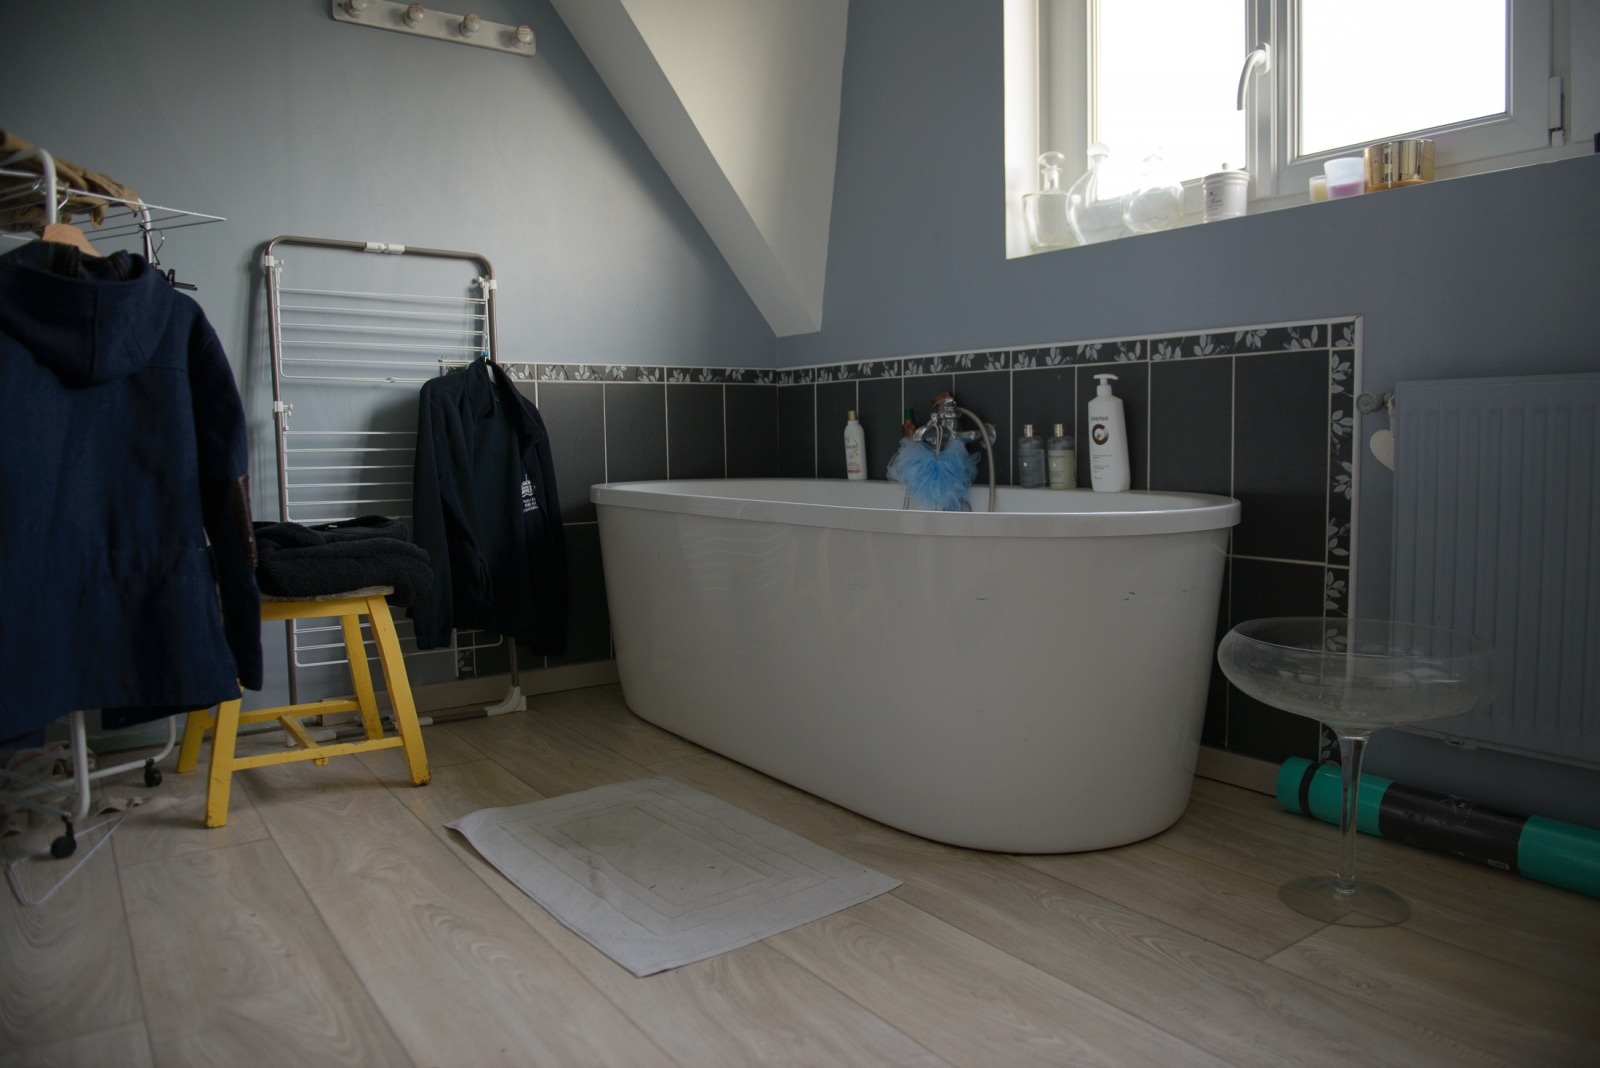 November 1, 2017 - Calais, France. The owner of this bathroom has been hosting refugees for 6 years. Like many other homeowners providing showers, she pays the water bill out of her own pocket.